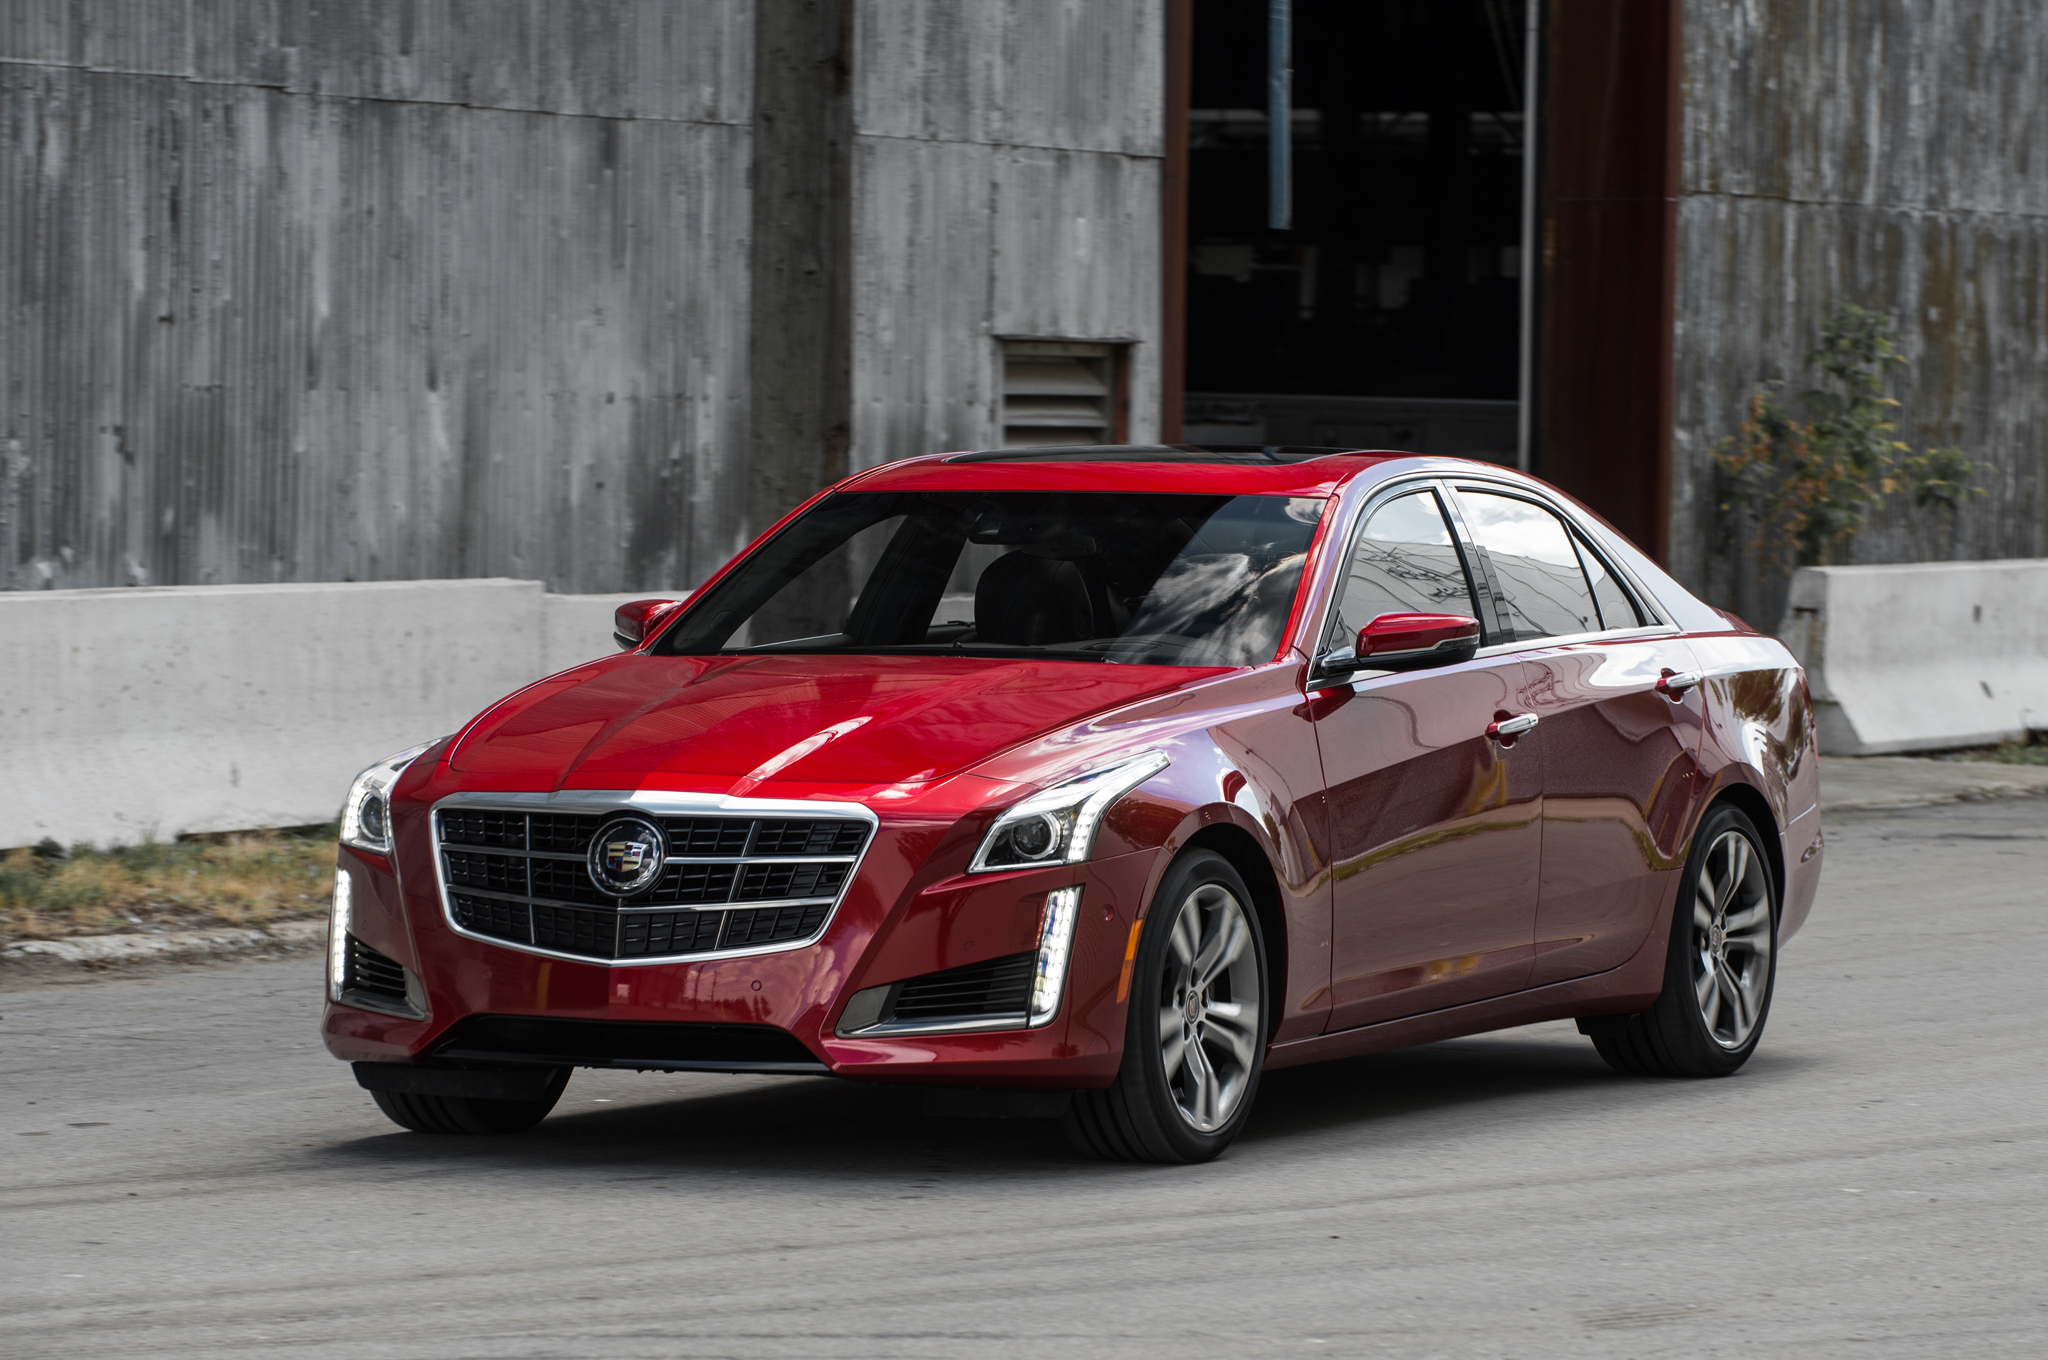 2014 Cadillac CTS Vsport Gets Tracked On Ignition (W/Video)